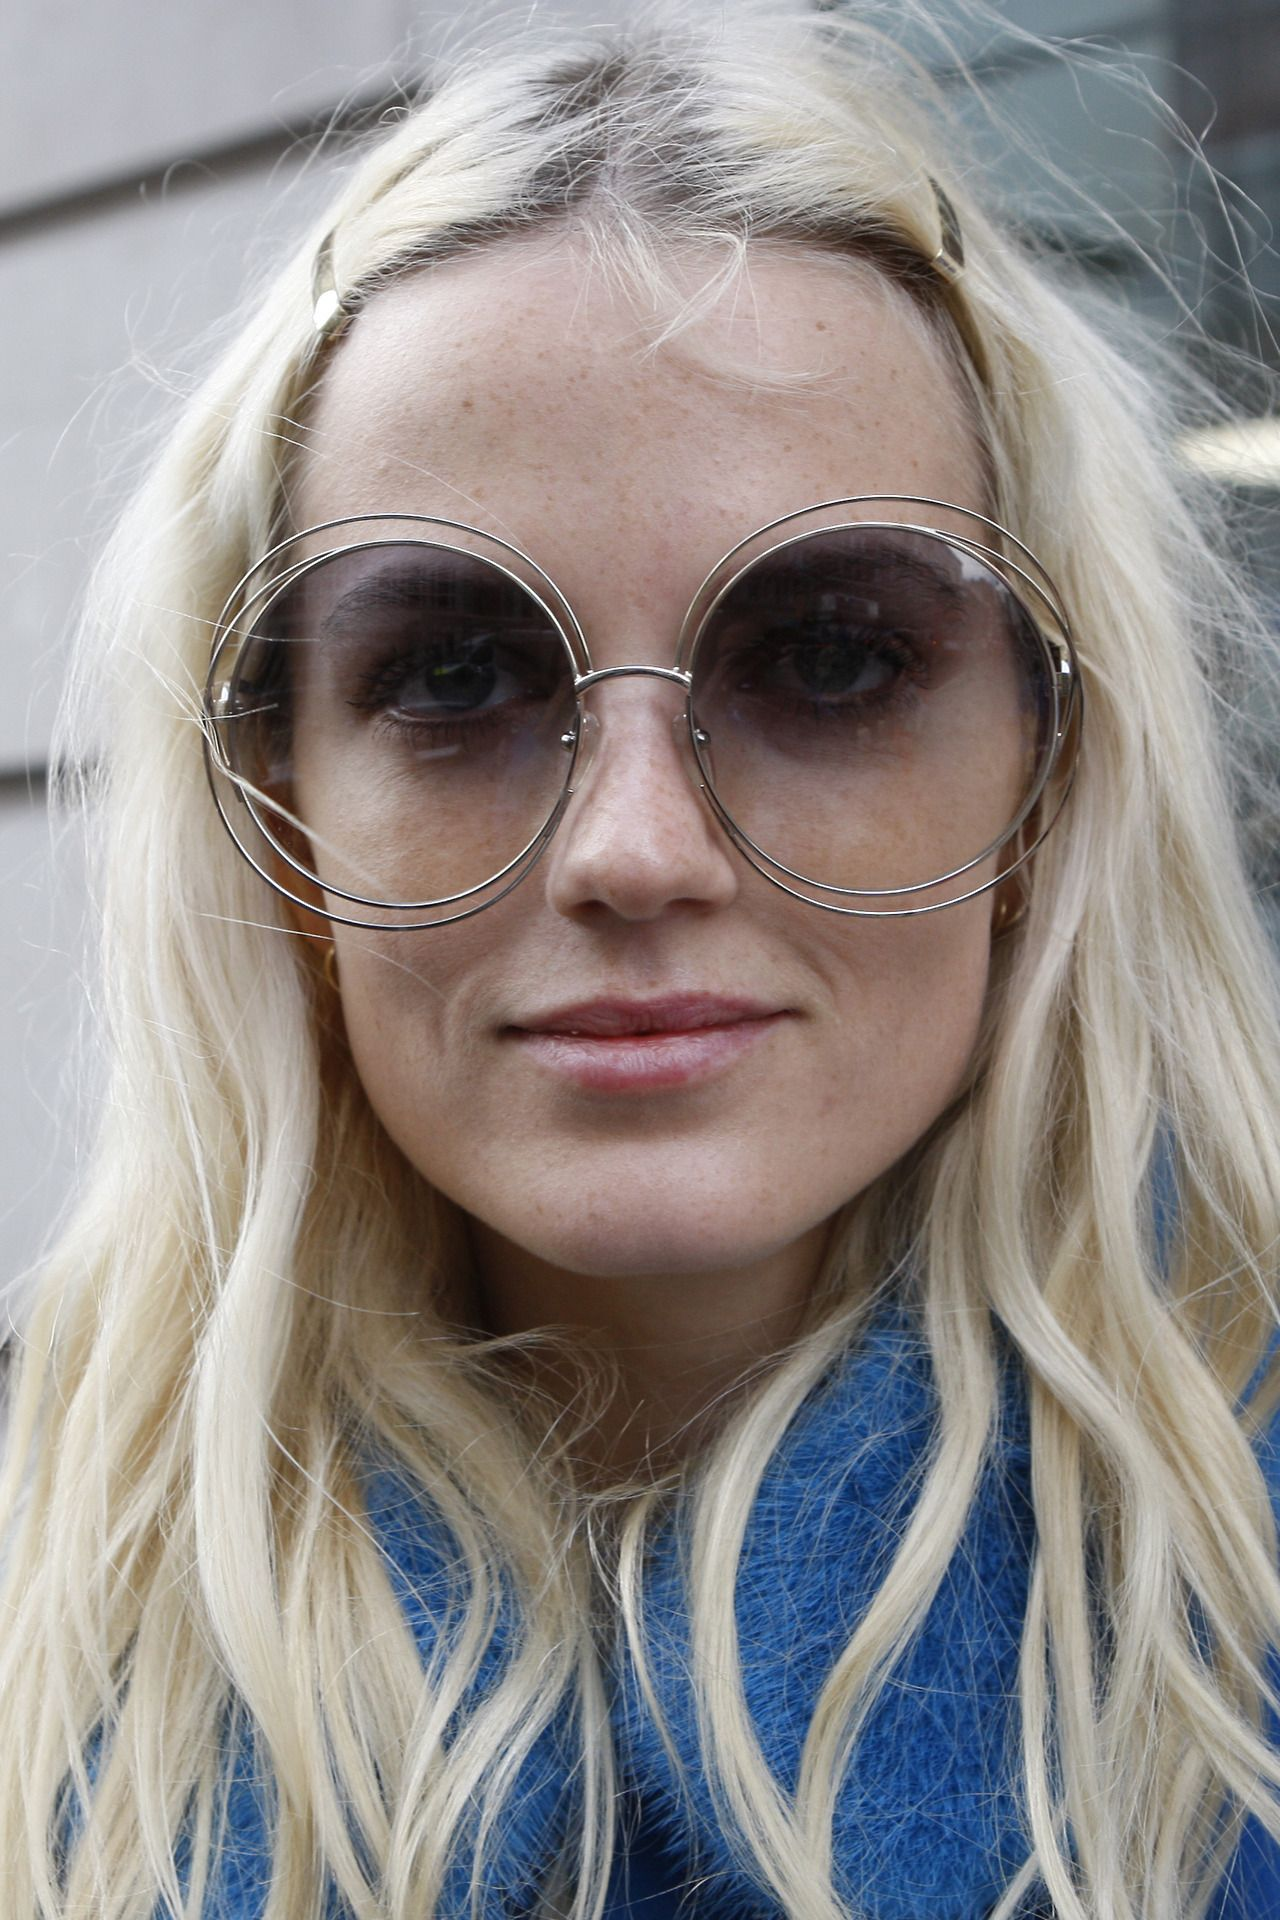 84b4dbe58 Blocking the UV-rays in style at #LFW #SS15 with these oversized  wire-rimmed rounded shades #streetstyle